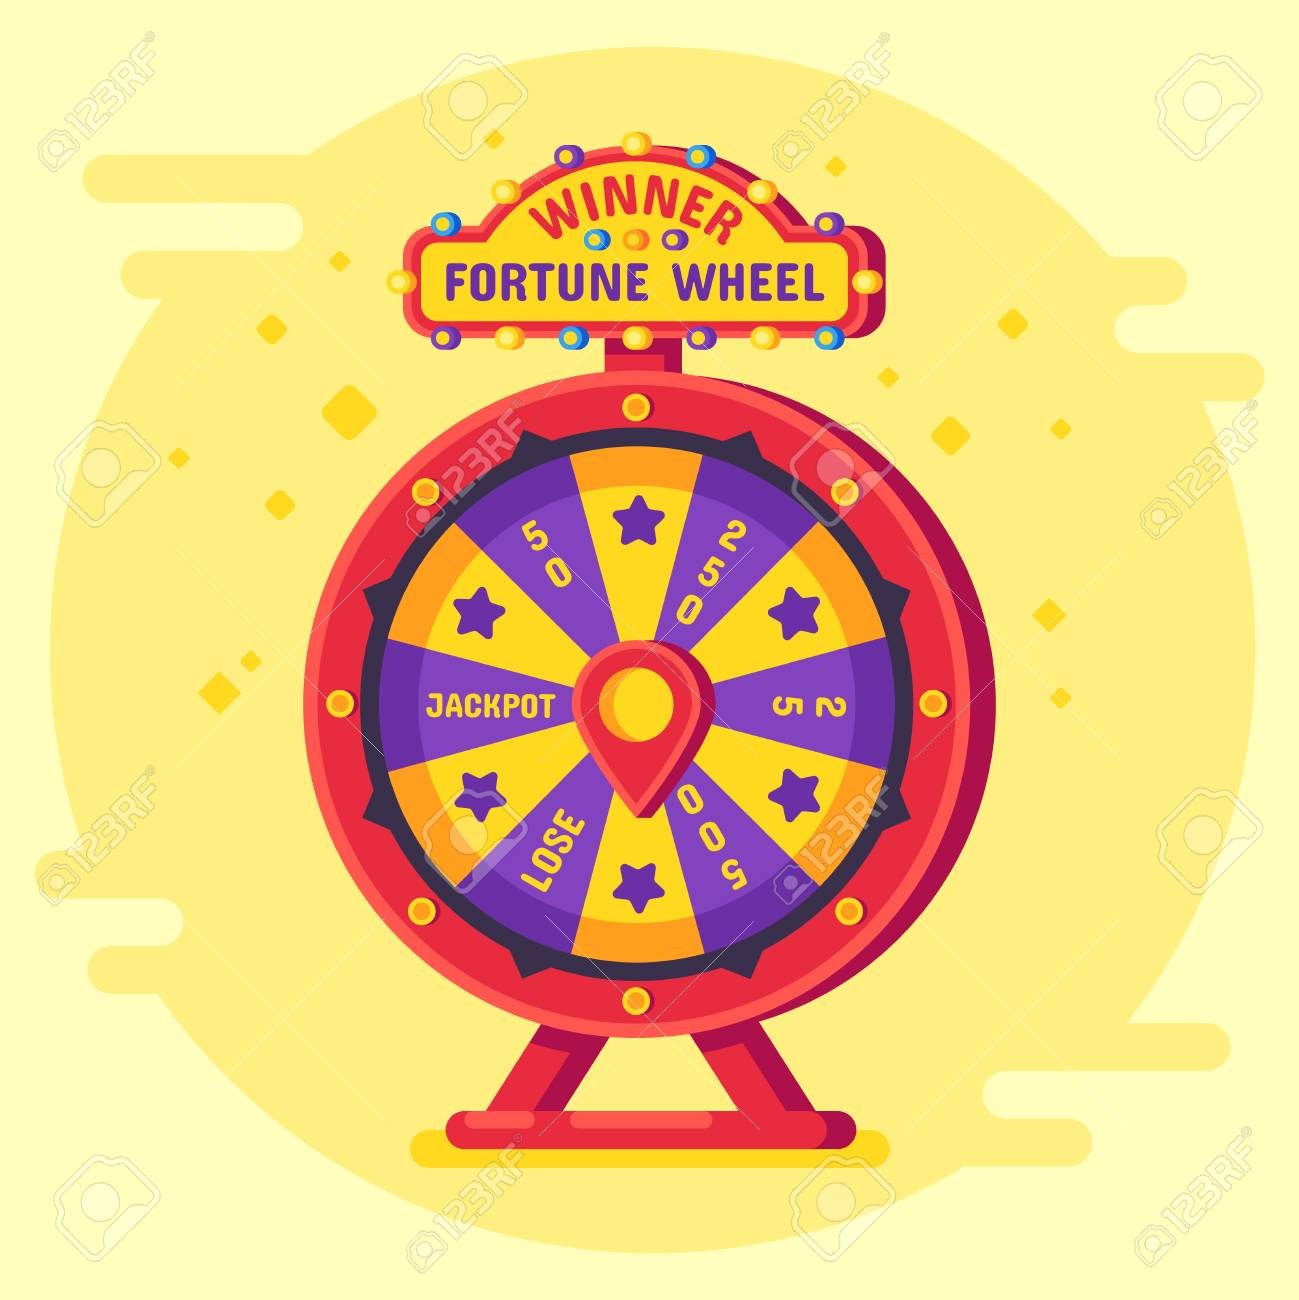 Fortune Wheel Winner Lucky Chance Spin Wheels Game Modern Turning Royalty Free Cliparts Vectors And Stock Illustration Image 110290090